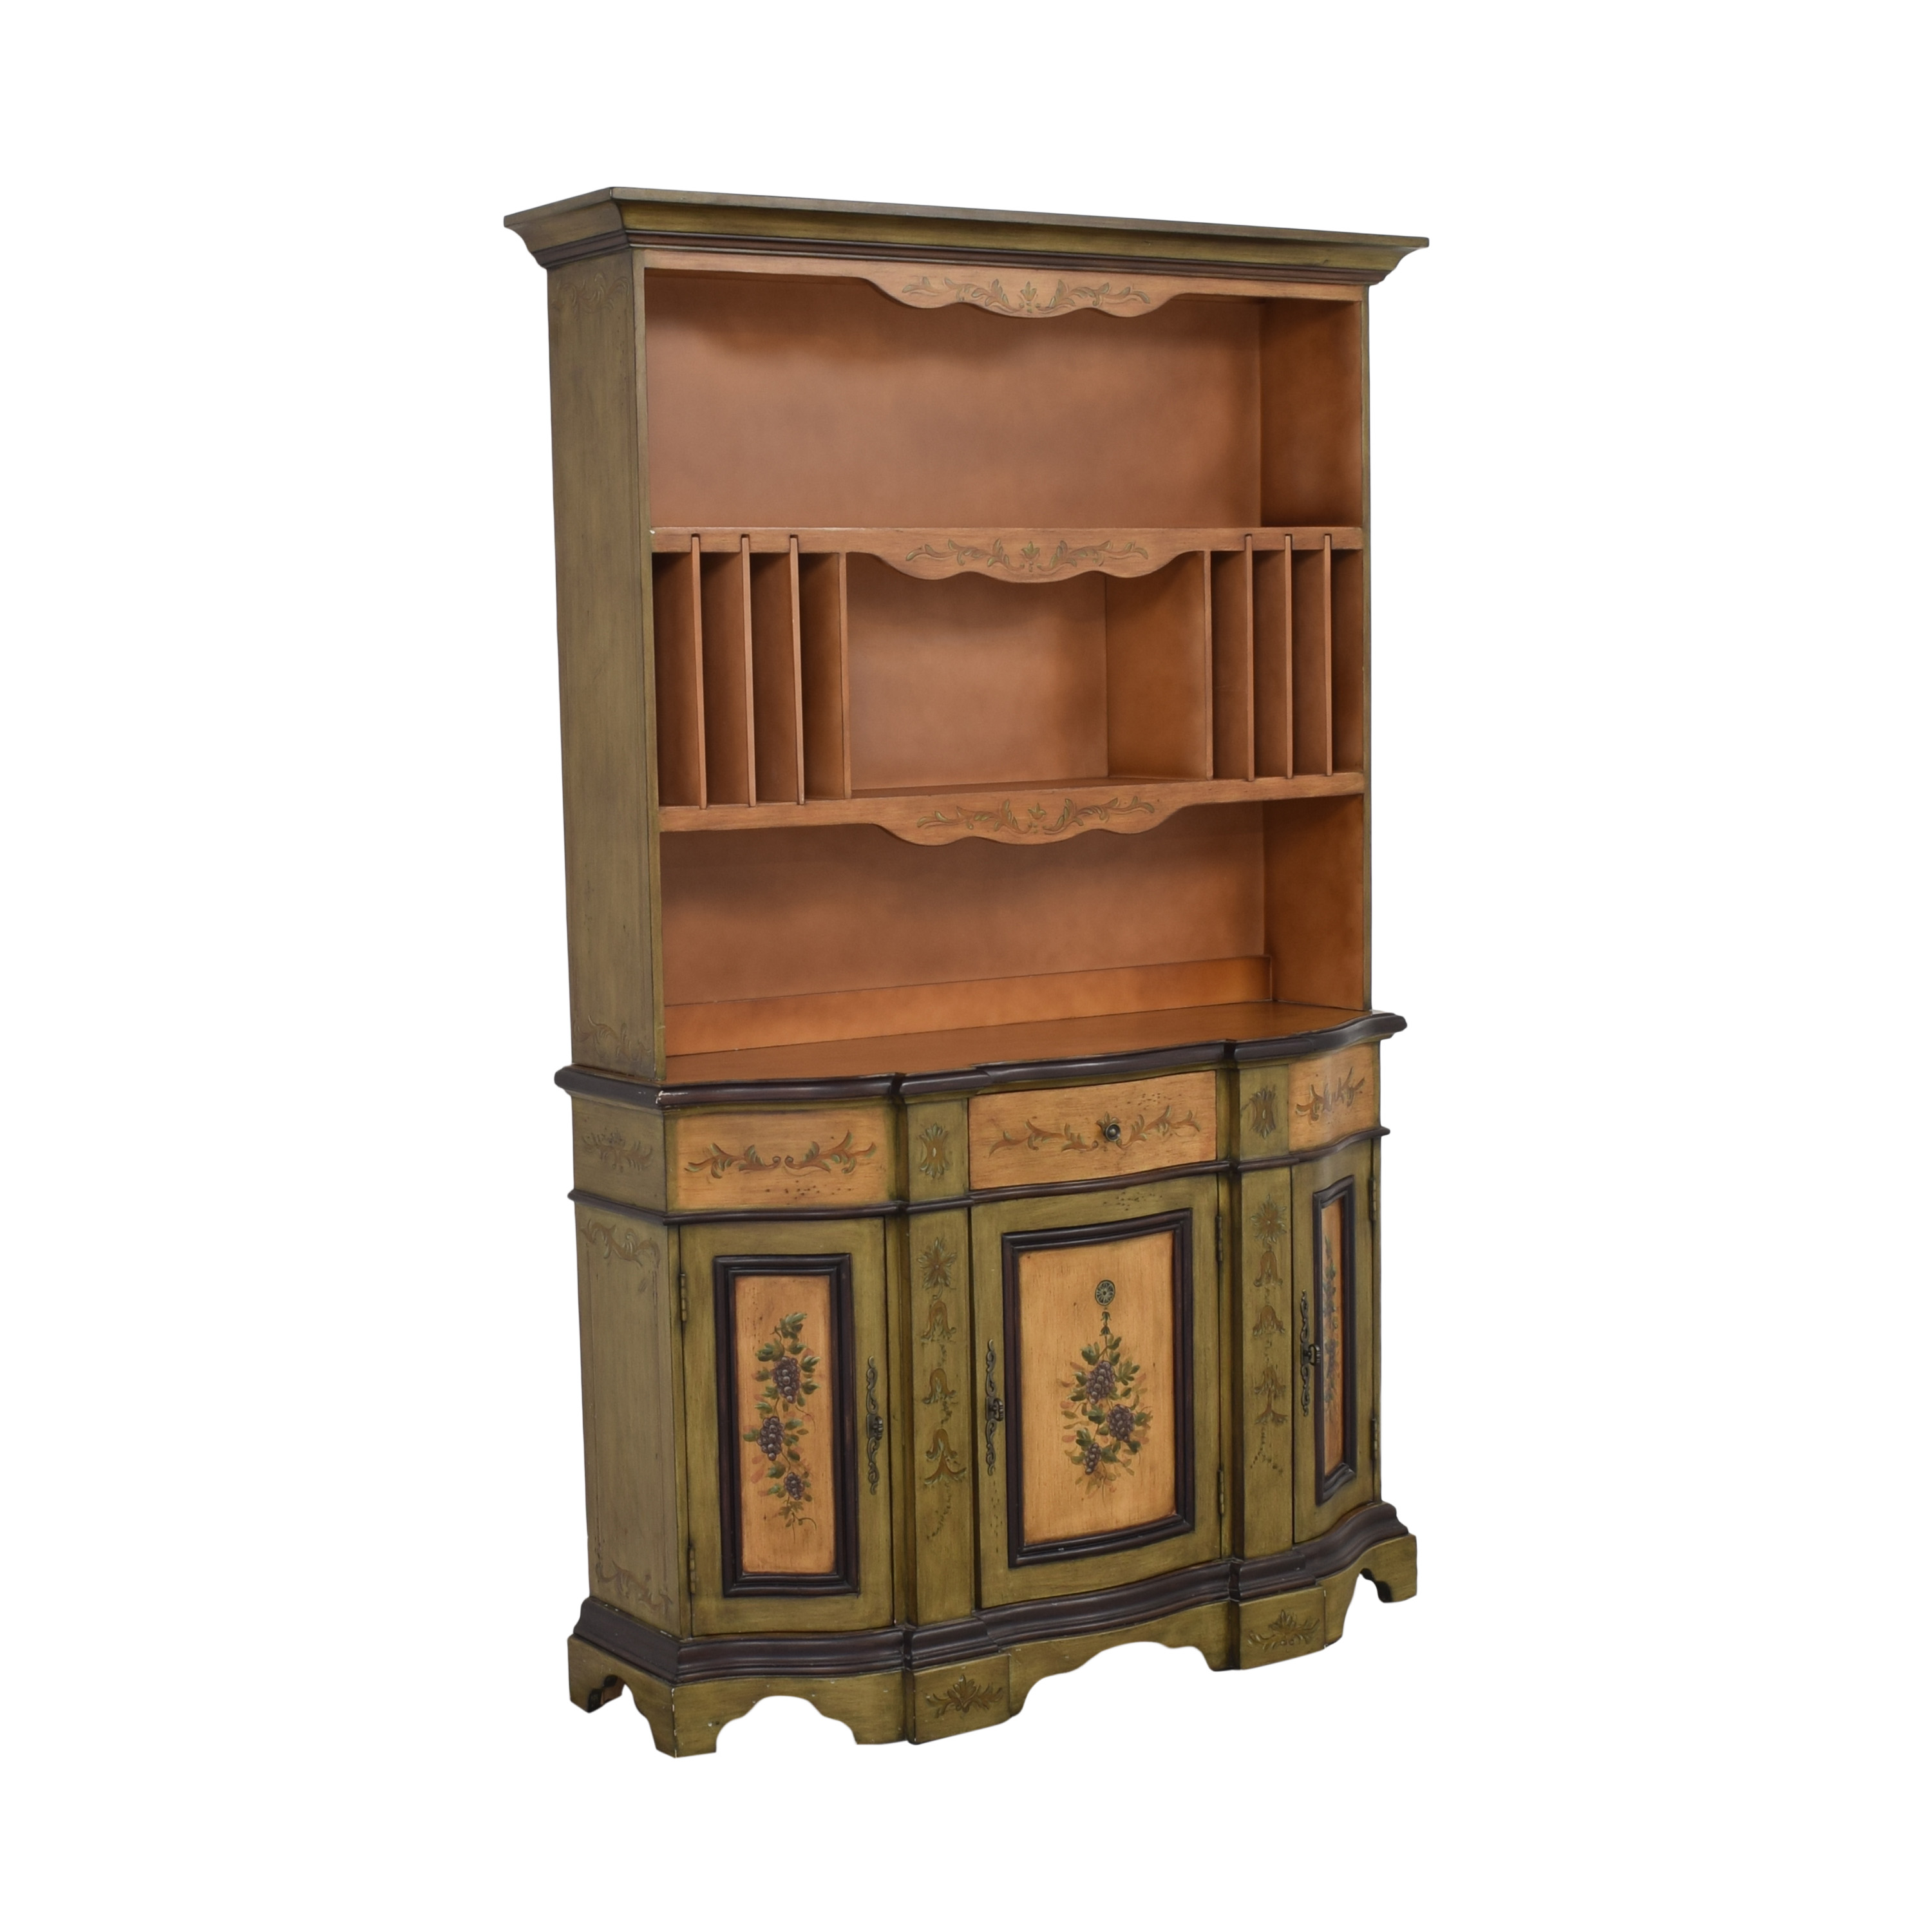 Vintage Butler Pantry second hand